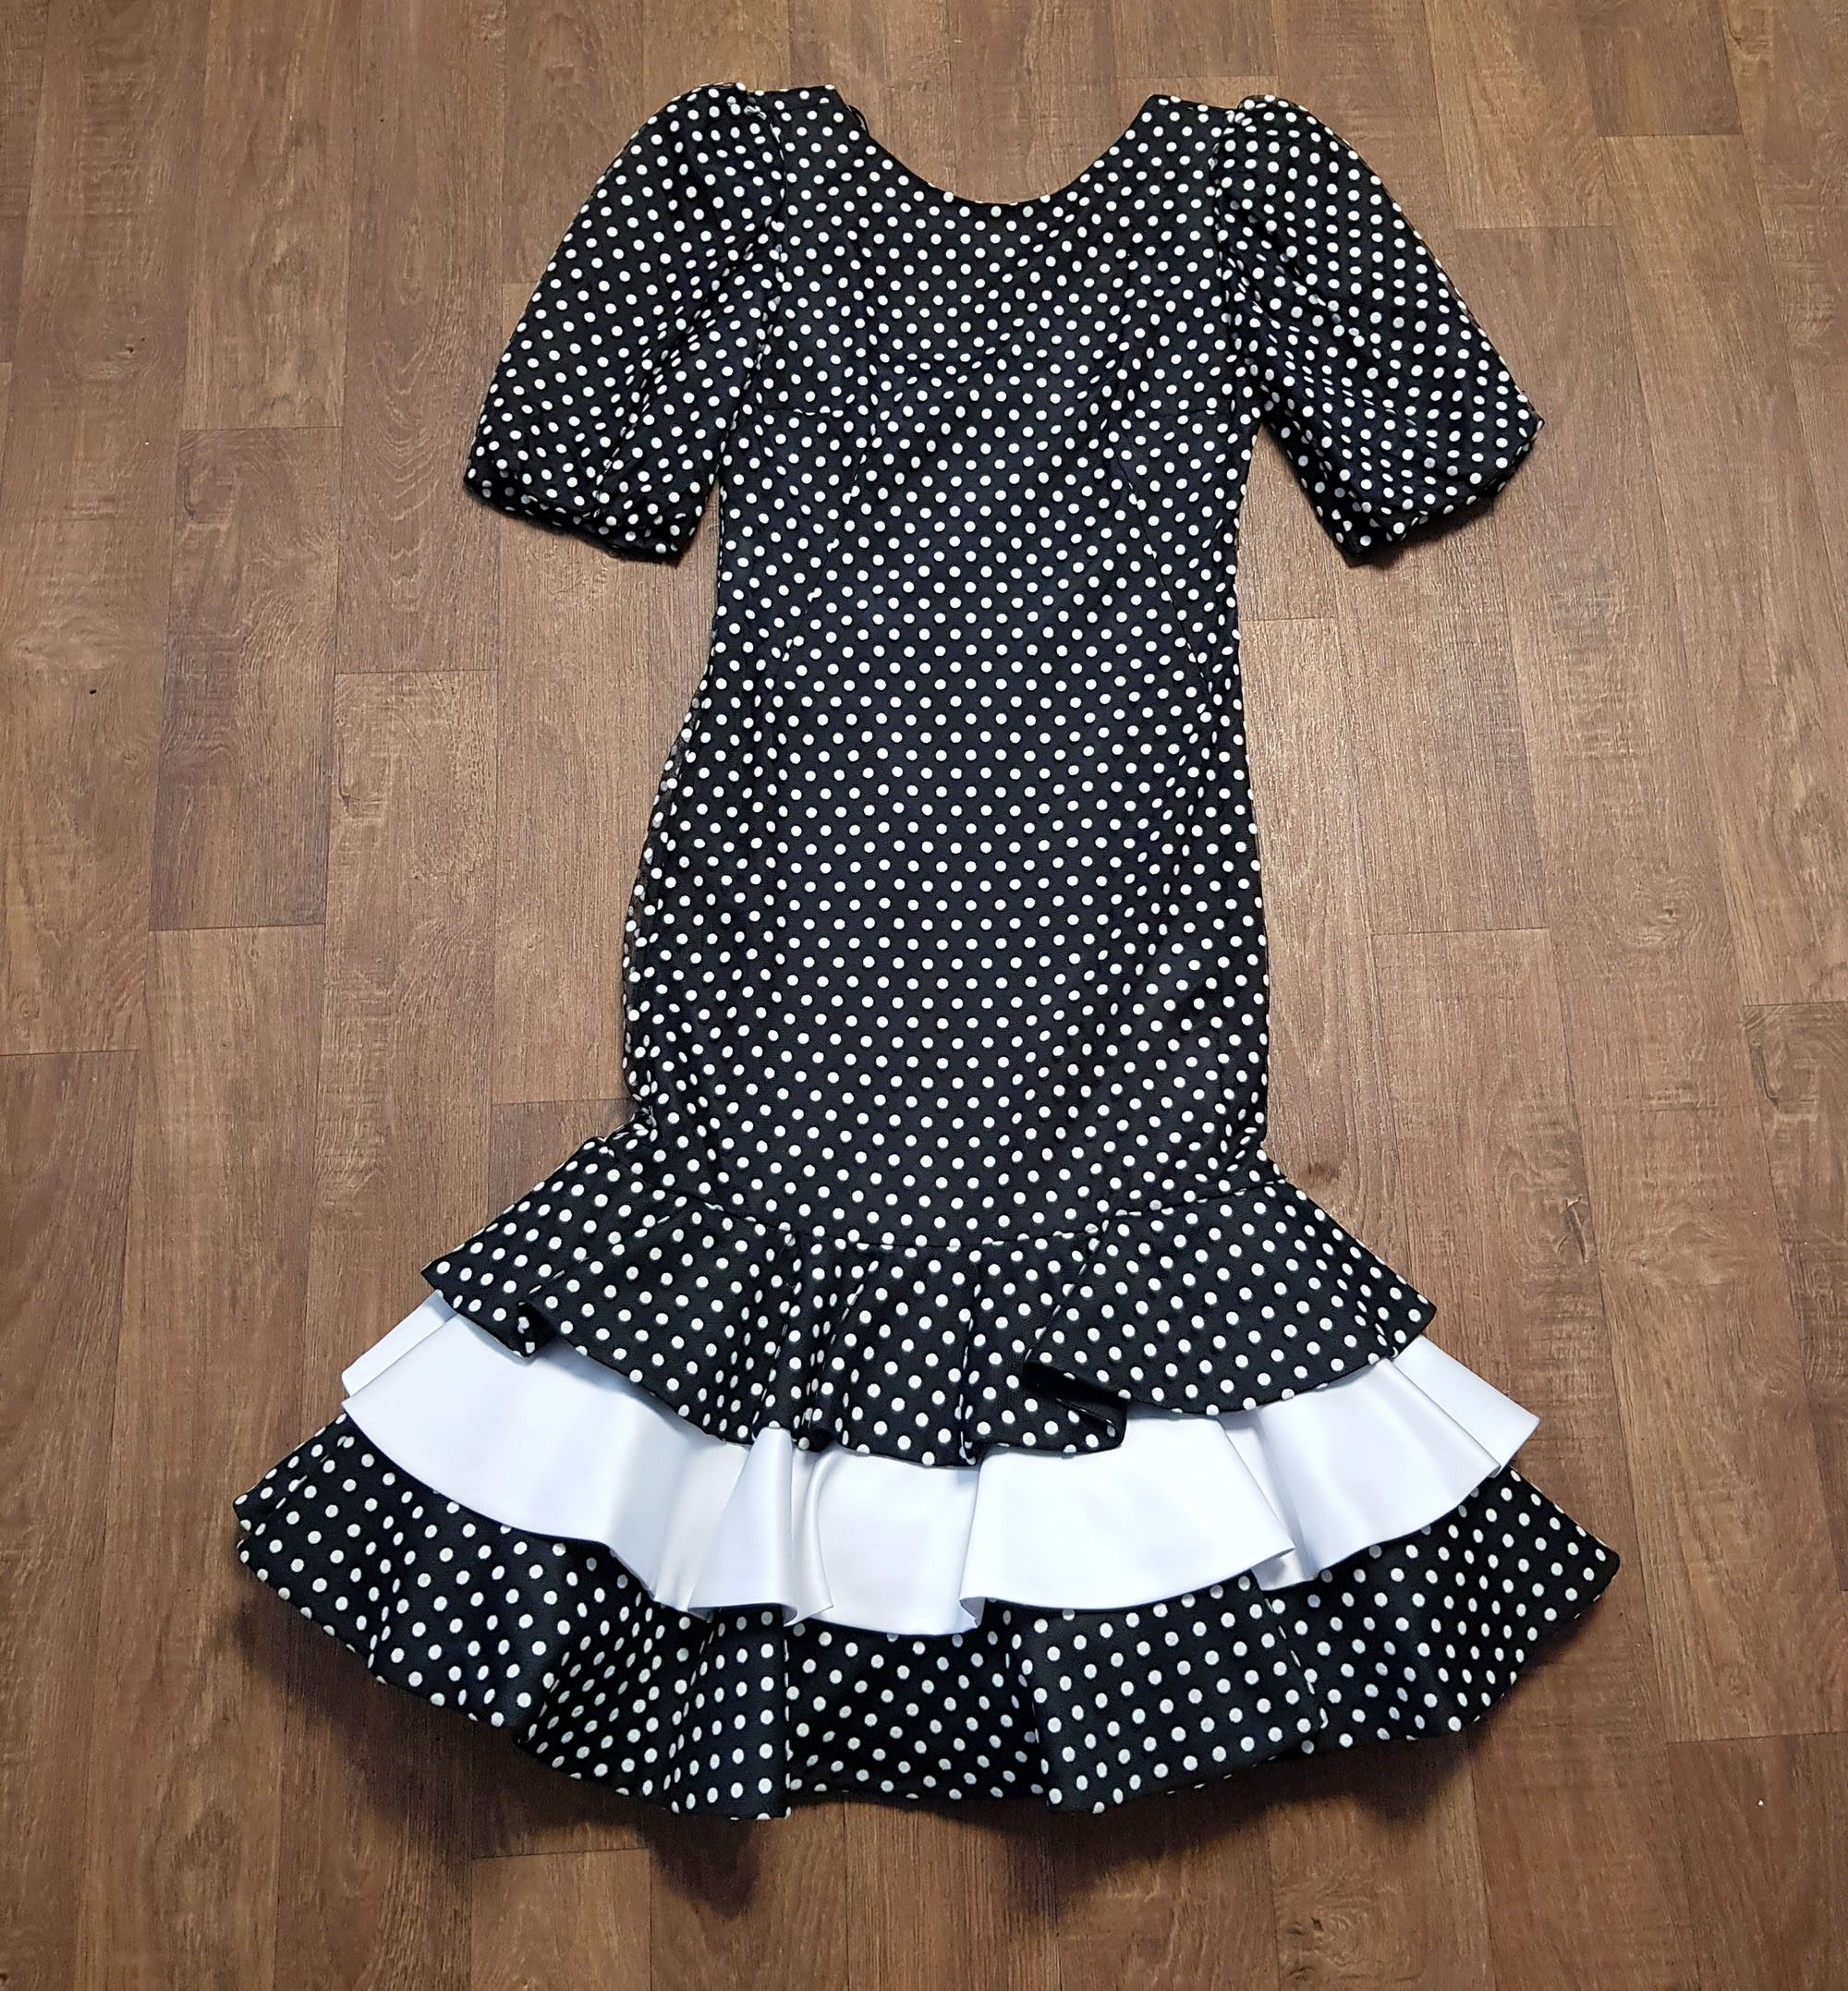 1980s Vintage Frank Usher Monochrome Spotty Cocktail Dress UK Size 8/10